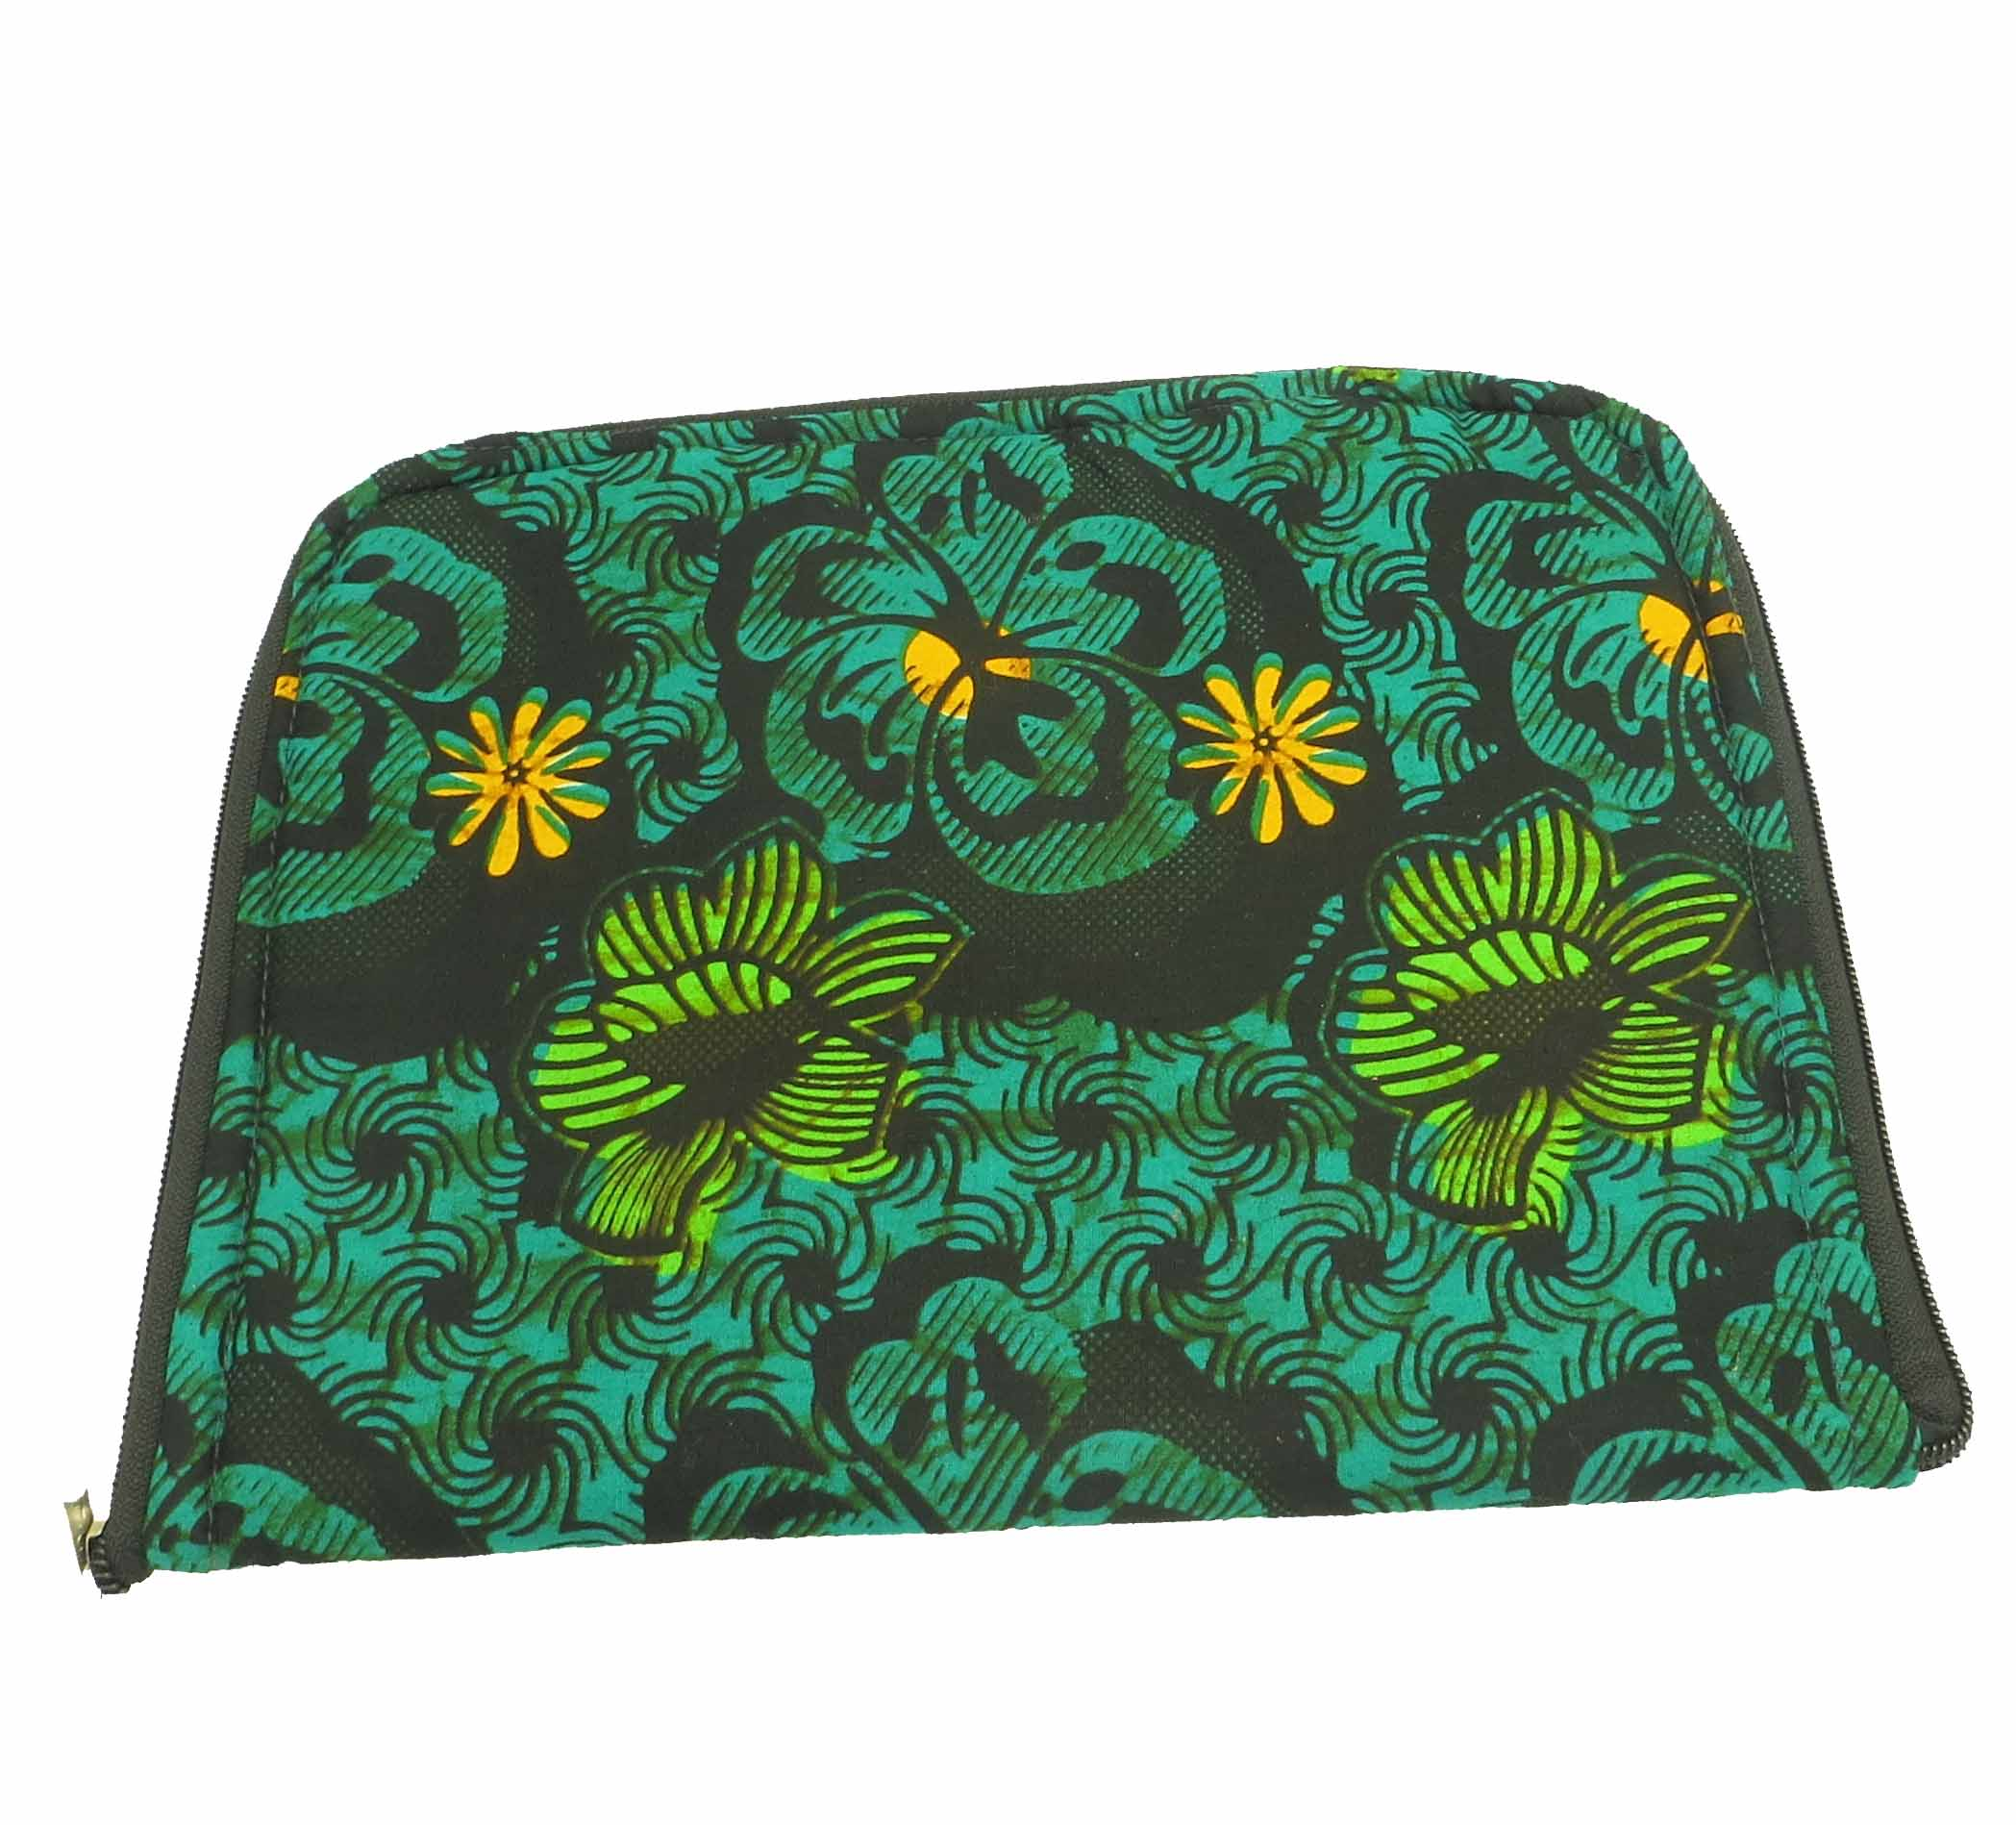 Cloth iPad cover - African kitenge